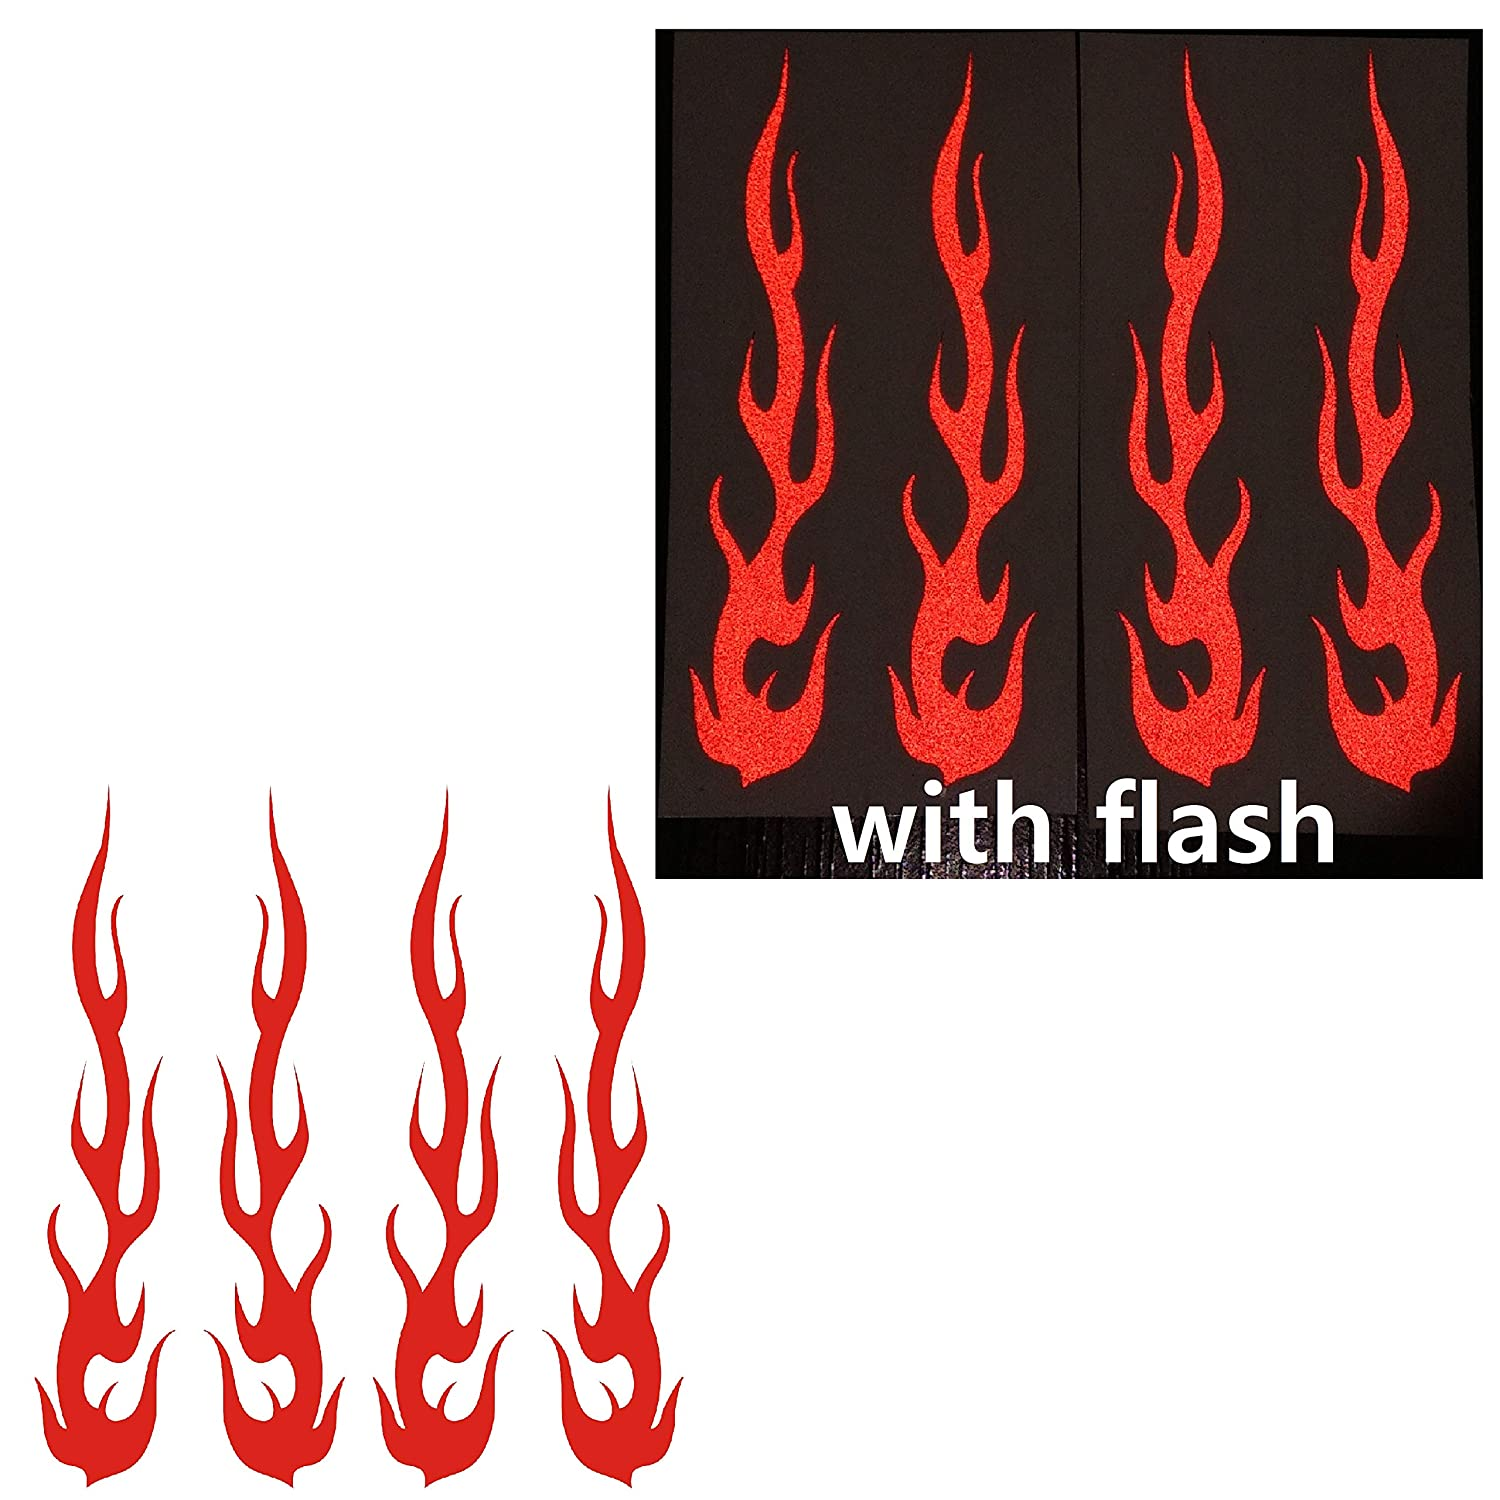 "Red Hot Rod Fire Tribal Flame Ignite Flames Retro 3M Reflective Reflector Decal Sticker 1""x5"" Flash Night Vinyl PVC For Sport Motorbike Bike Motorcycle Bicycle Helmet Racing Car Door Window Tailgate Truck Trunk Side Rear Laptop Notebook Mac Decal Safety"